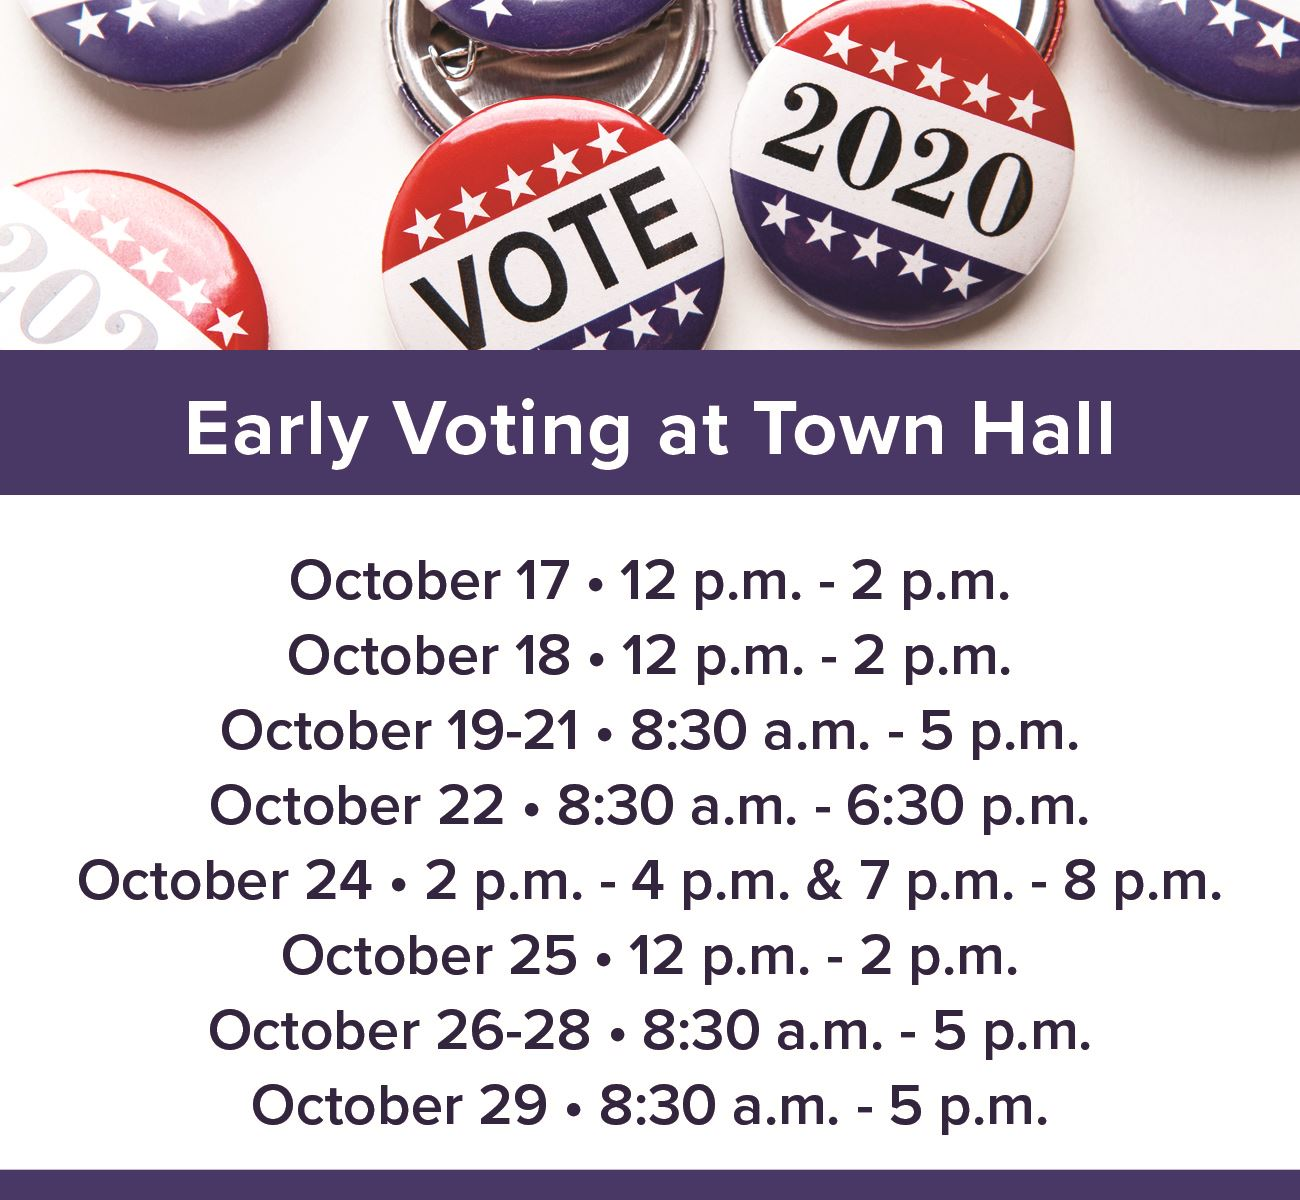 2020 Early Voting Times